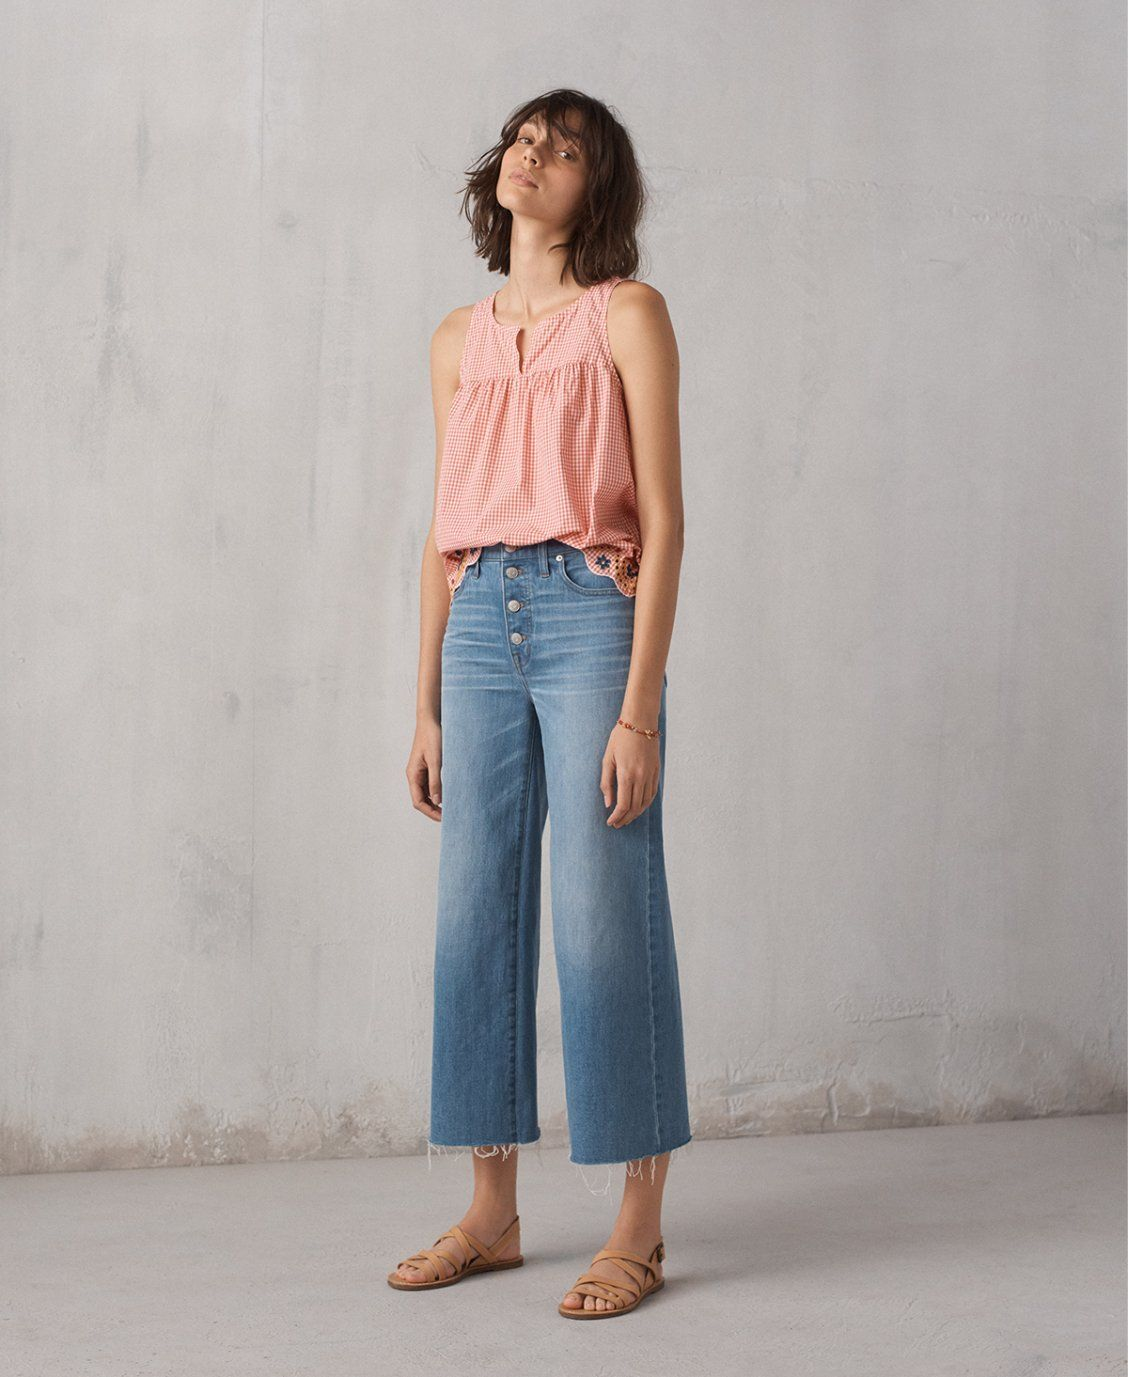 139227341e1 madewell wide-leg crop jeans worn with embroidered gingham tank top ...